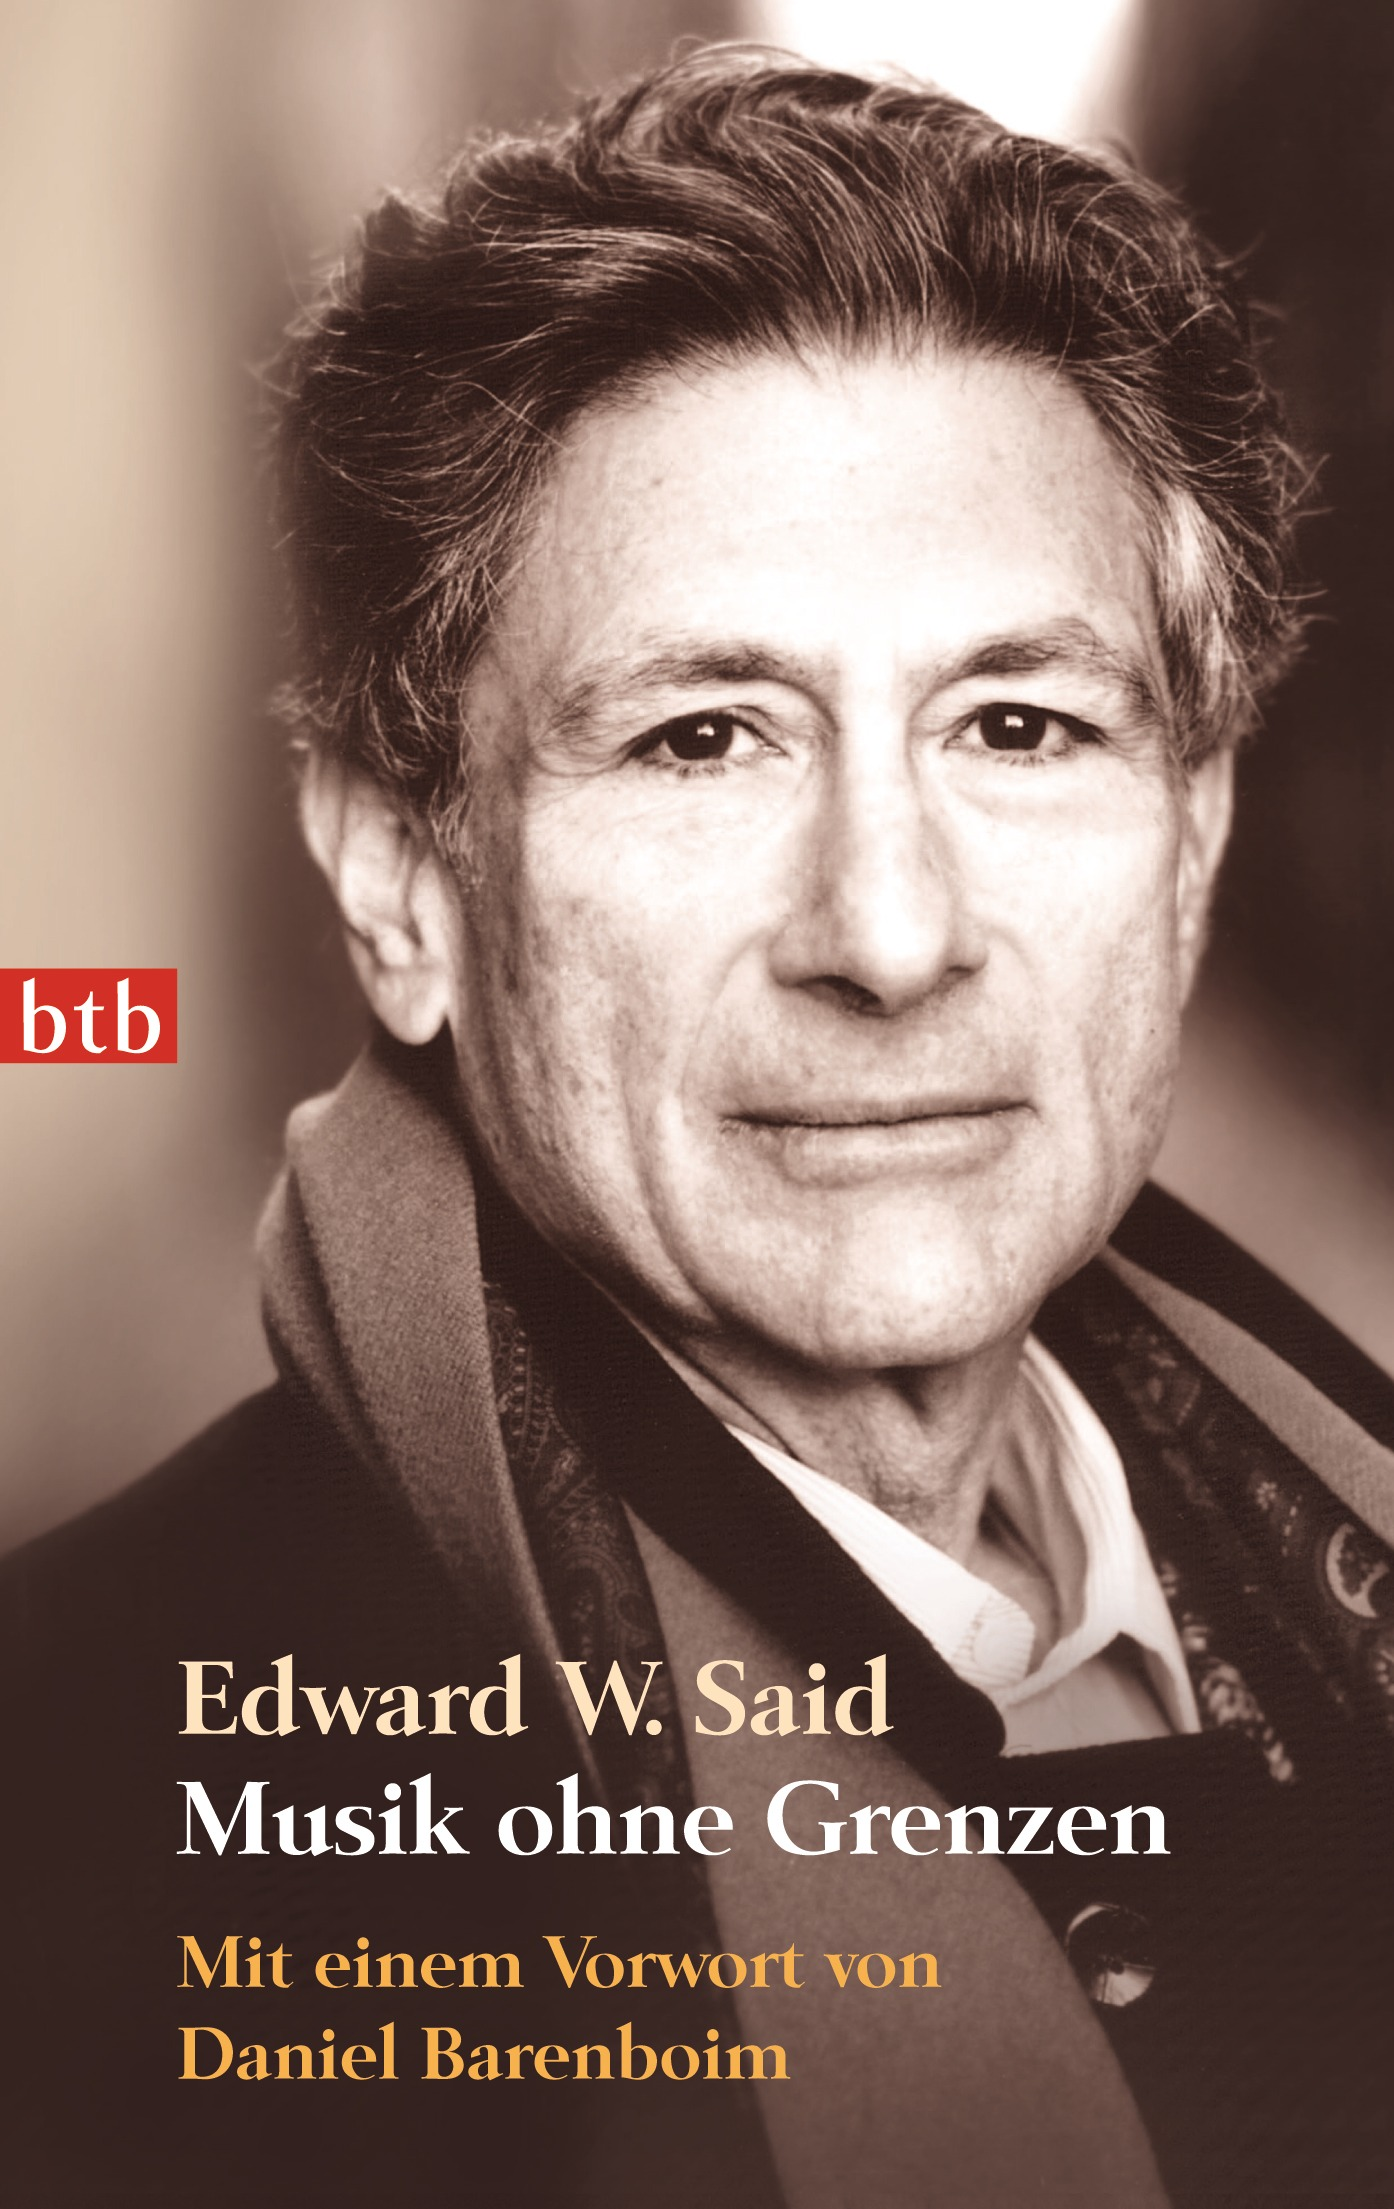 essay on edward w said on Essays related to orientalism - edward said 1 orientalism said, edward edward said is a diverse man edward said's most popular, yet most critiqued novel.